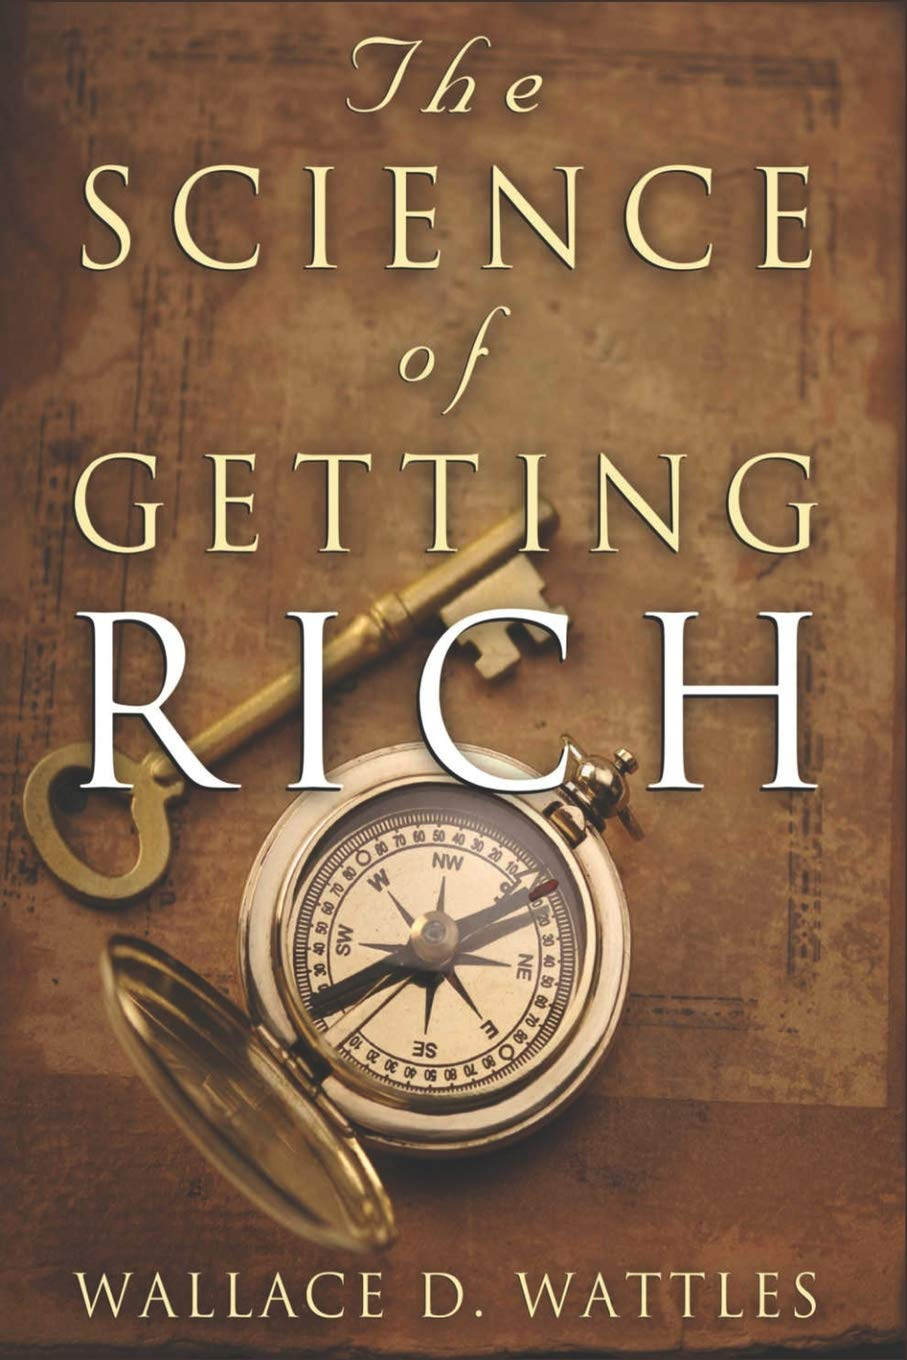 The Science of Getting Rich - Wallace D. Wattles notes by Kingston S. LIm